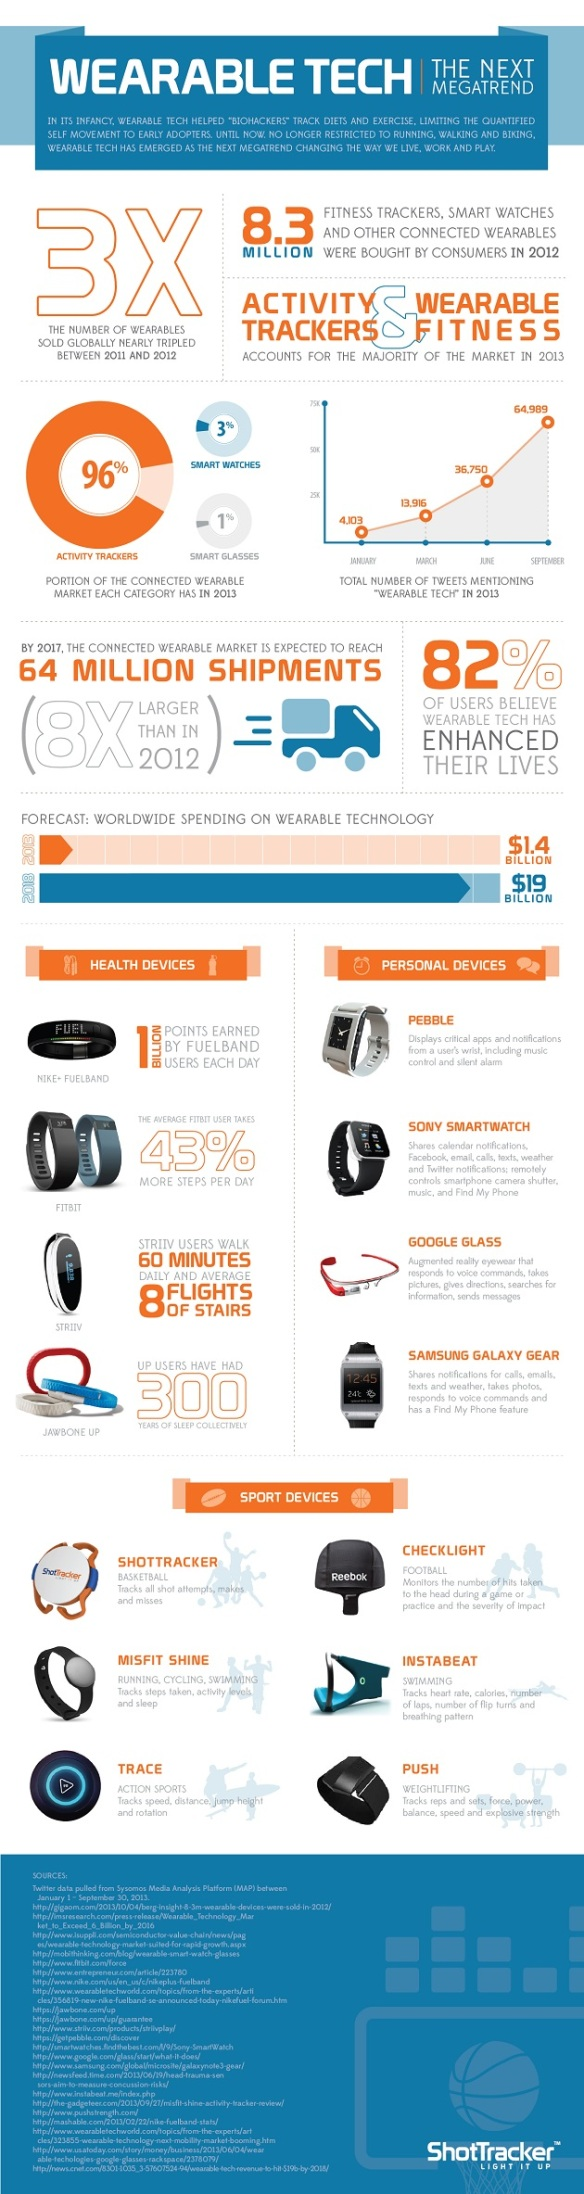 Wearable Tech Megatrend